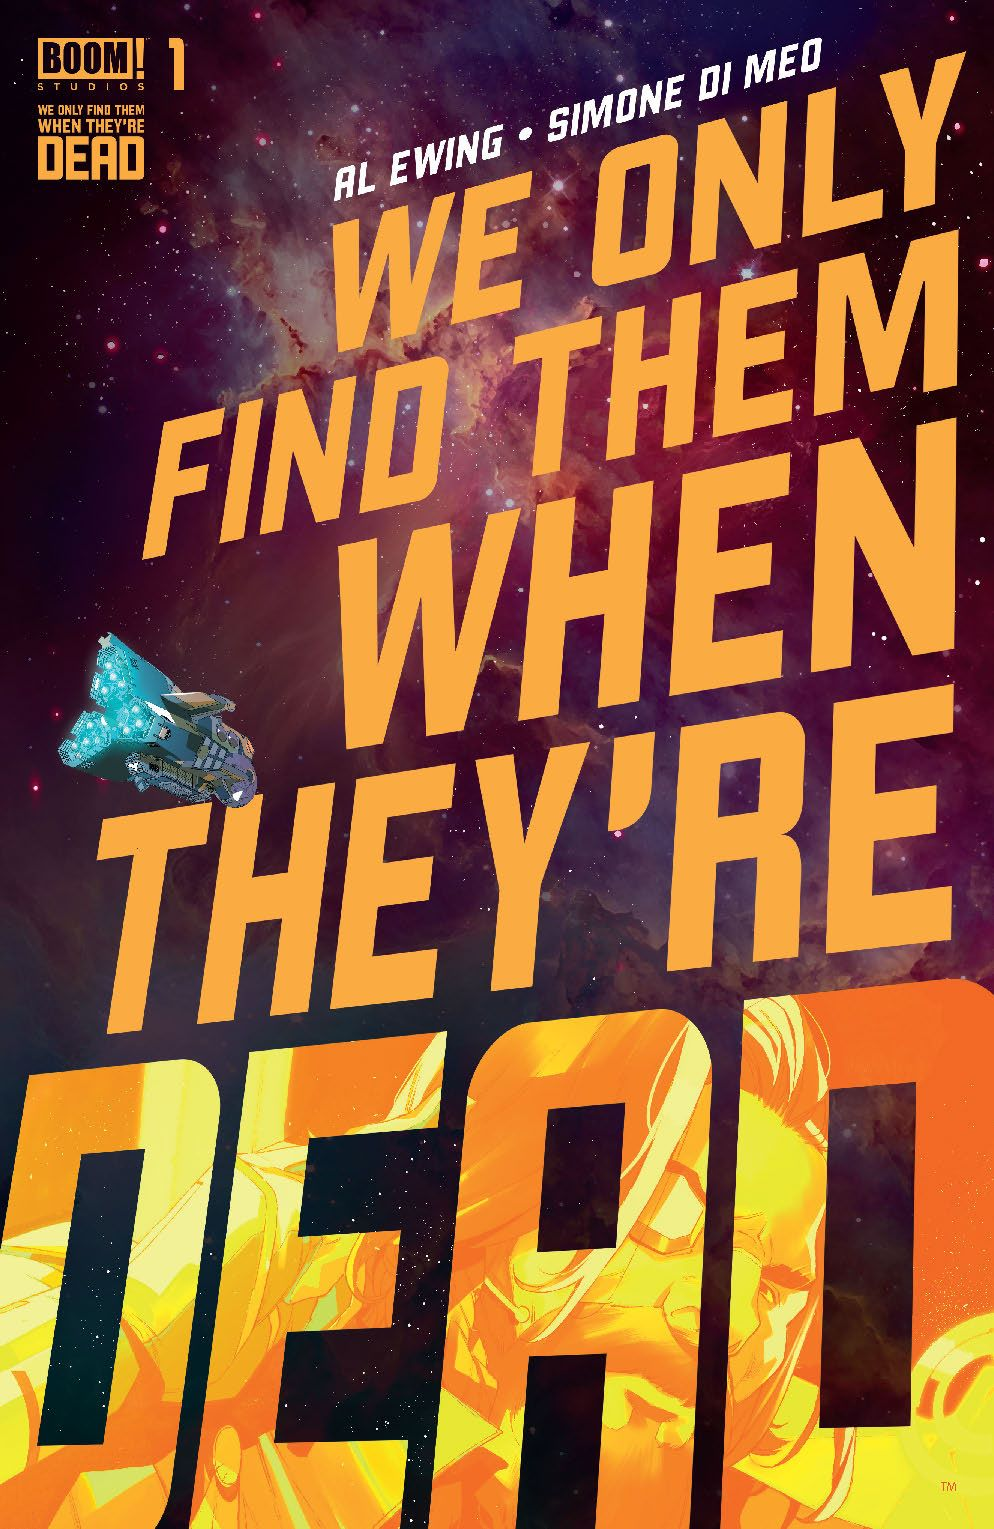 WeOnlyFindThem_001_Cover_Main ComicList Previews: WE ONLY FIND THEM WHEN THEY'RE DEAD #1